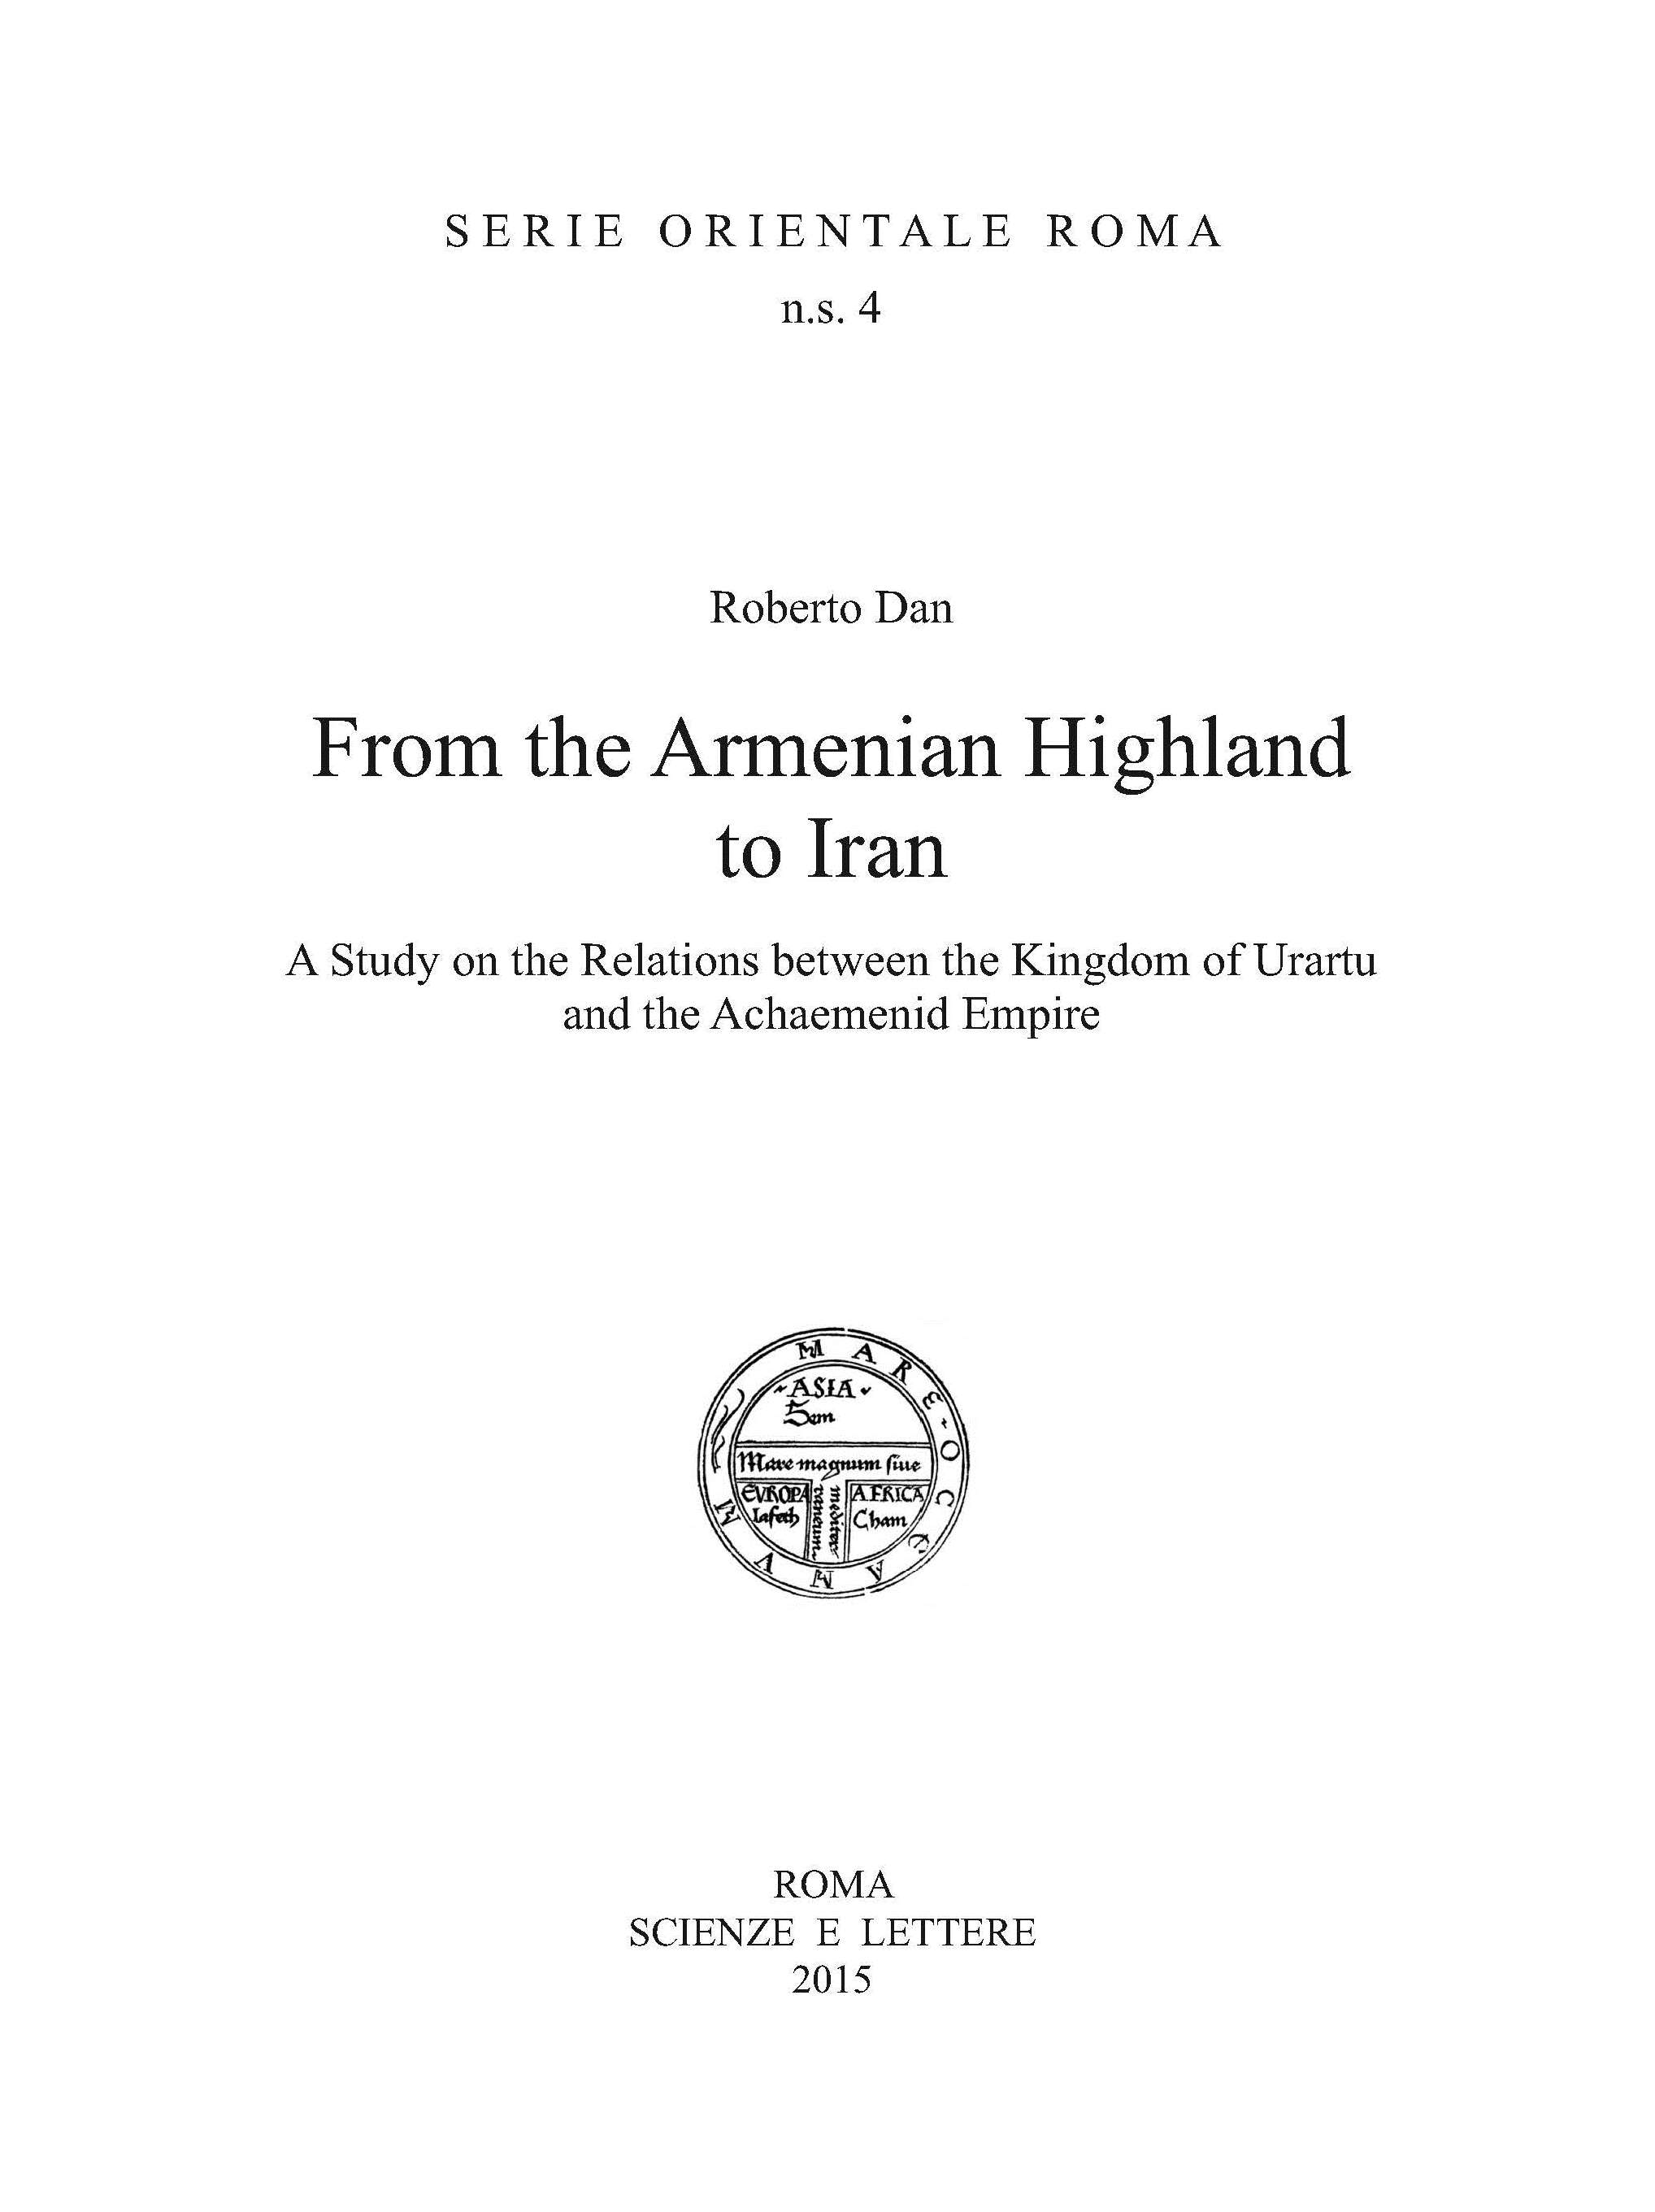 From the Armenian Highland to Iran